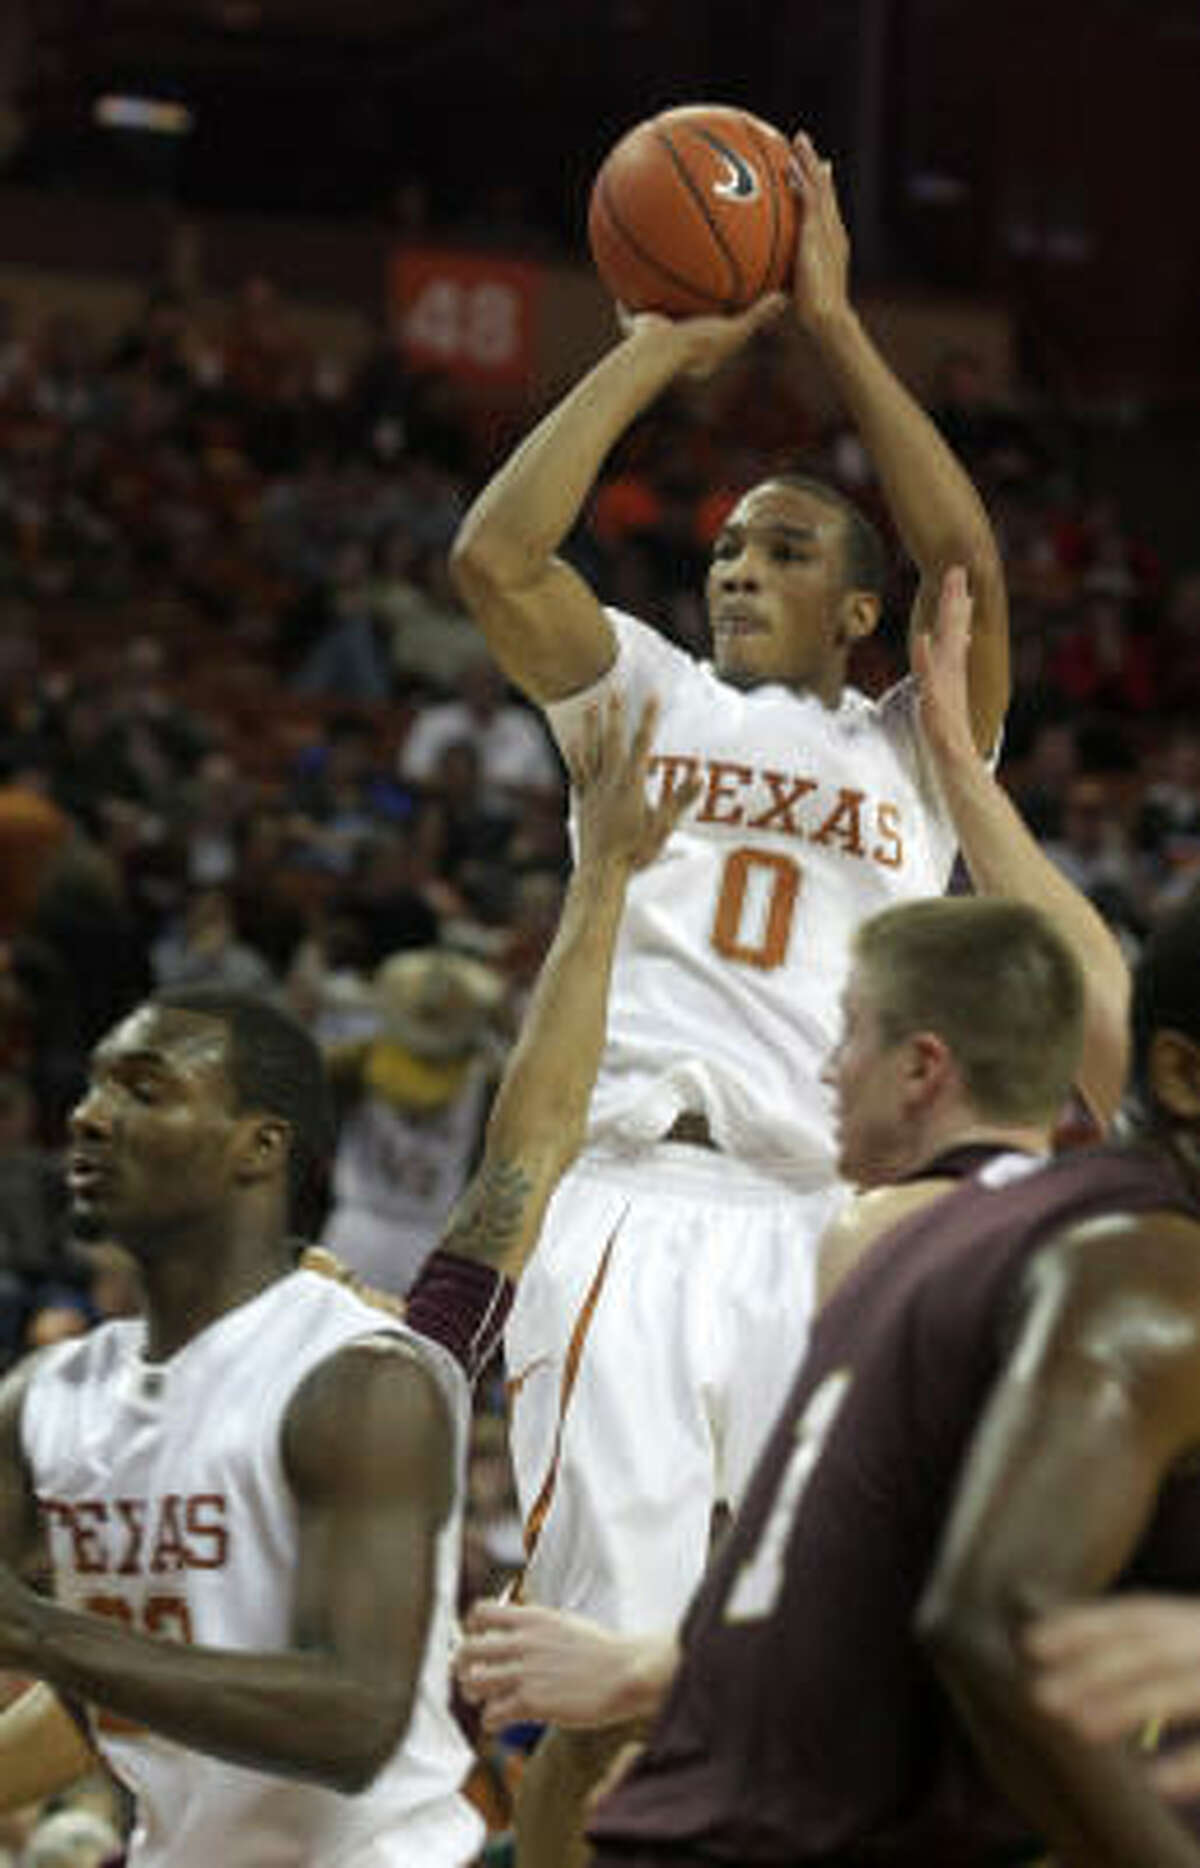 Texas guard Avery Bradley (0) didn't start right away as the Longhorns' lineup is one of the deepest in the nation.